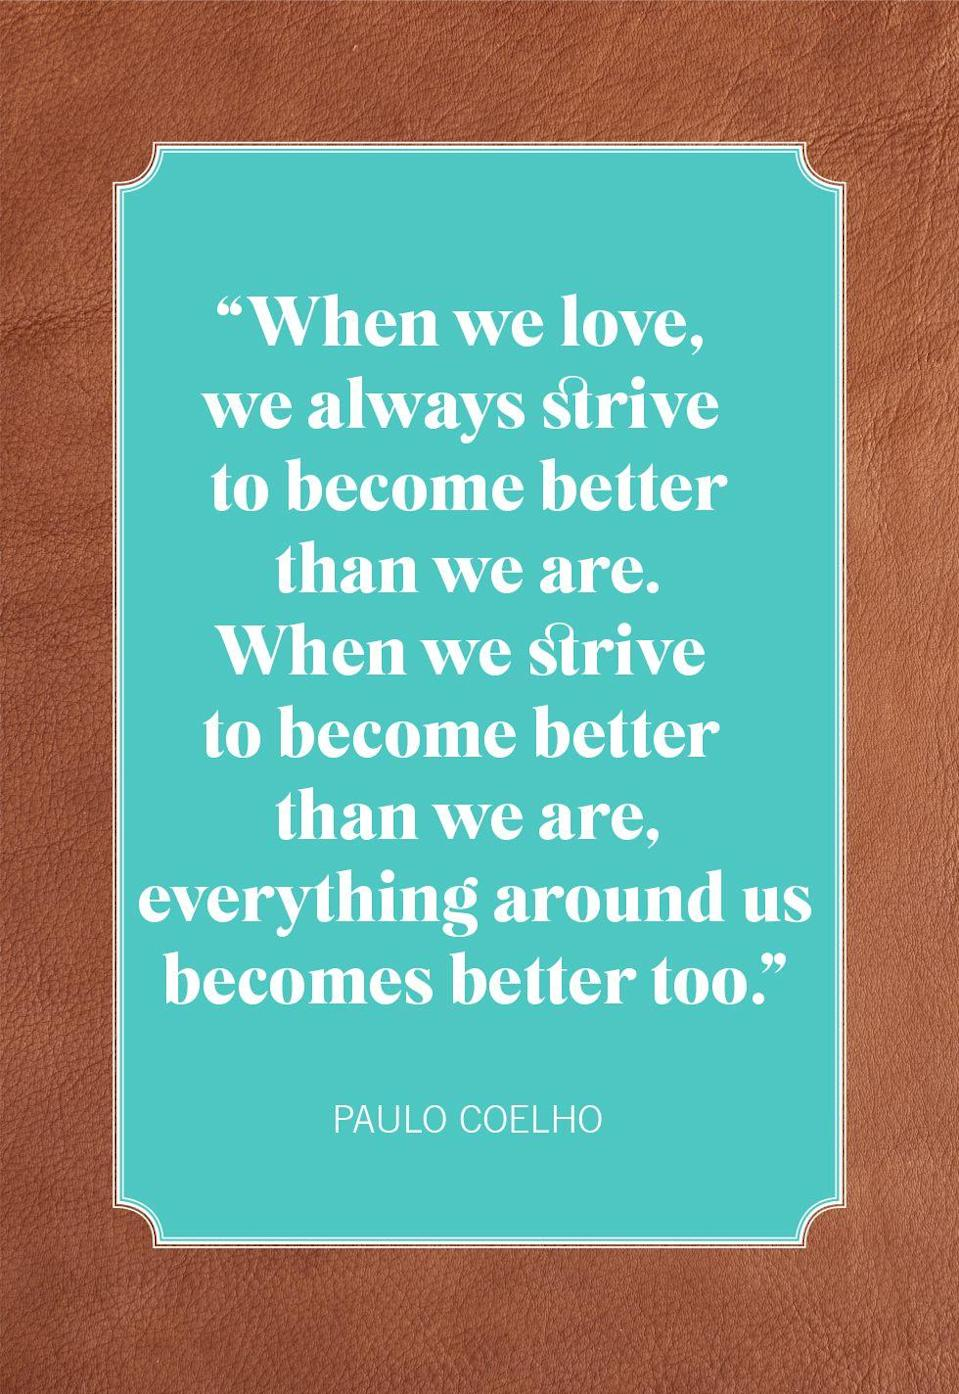 "<p>""When we love, we always strive to become better than we are. When we strive to become better than we are, everything around us becomes better too.""</p>"